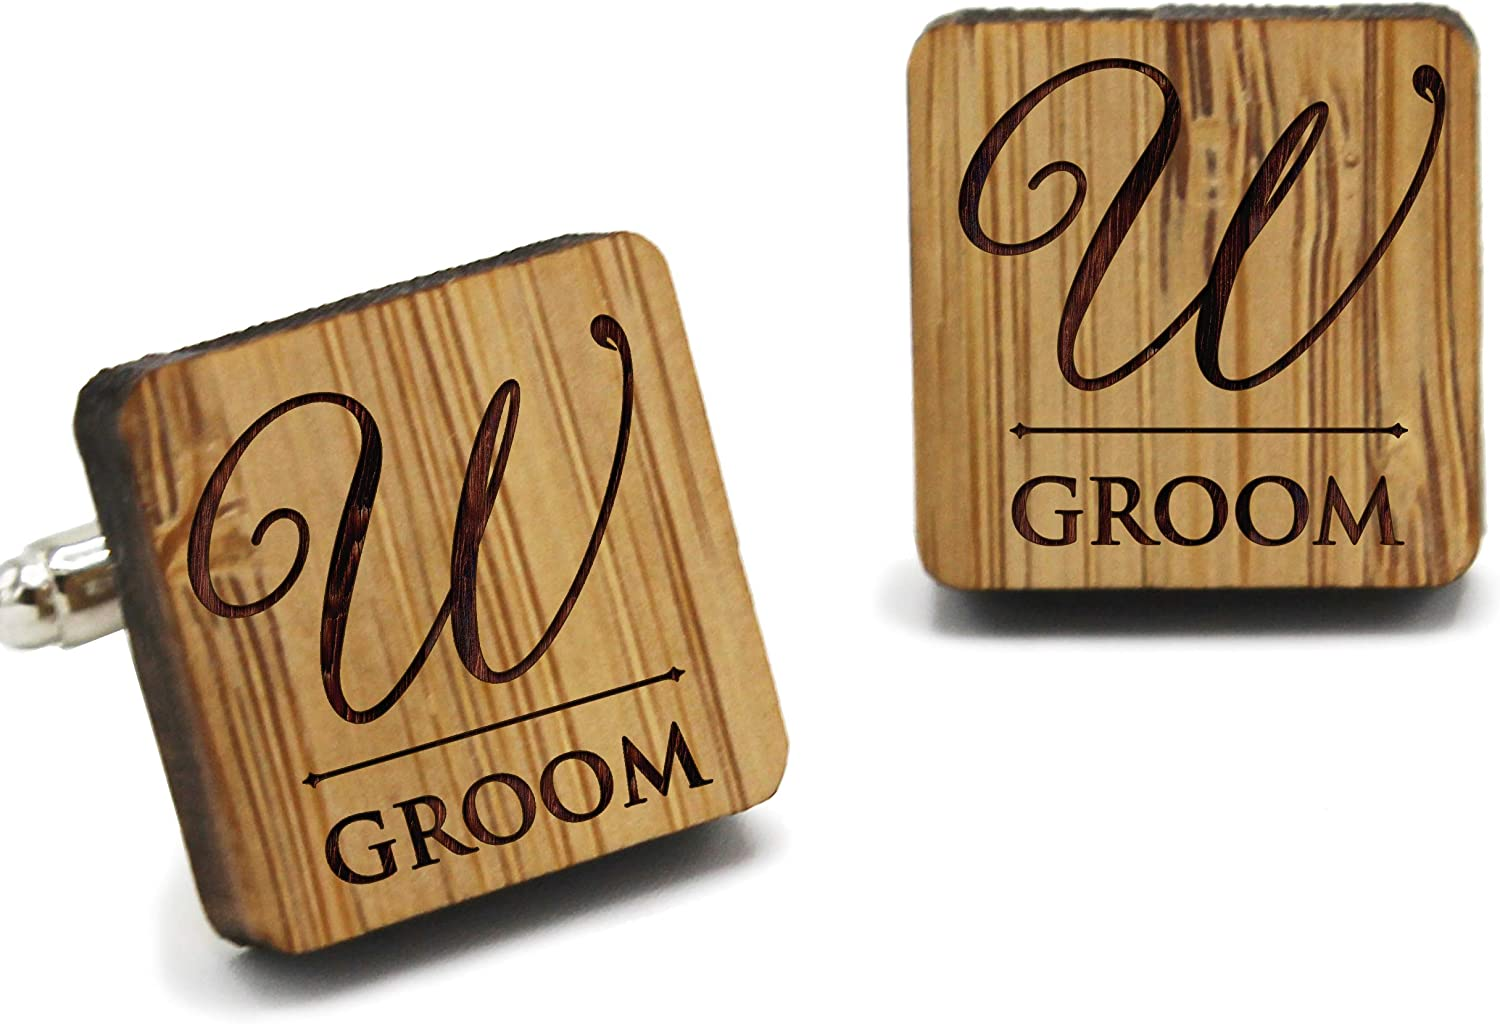 The Wedding Party Store Custom Personalized Wood Cuff Links - Engraved Wooden Cufflinks for Groom, Groomsmen, Best Man